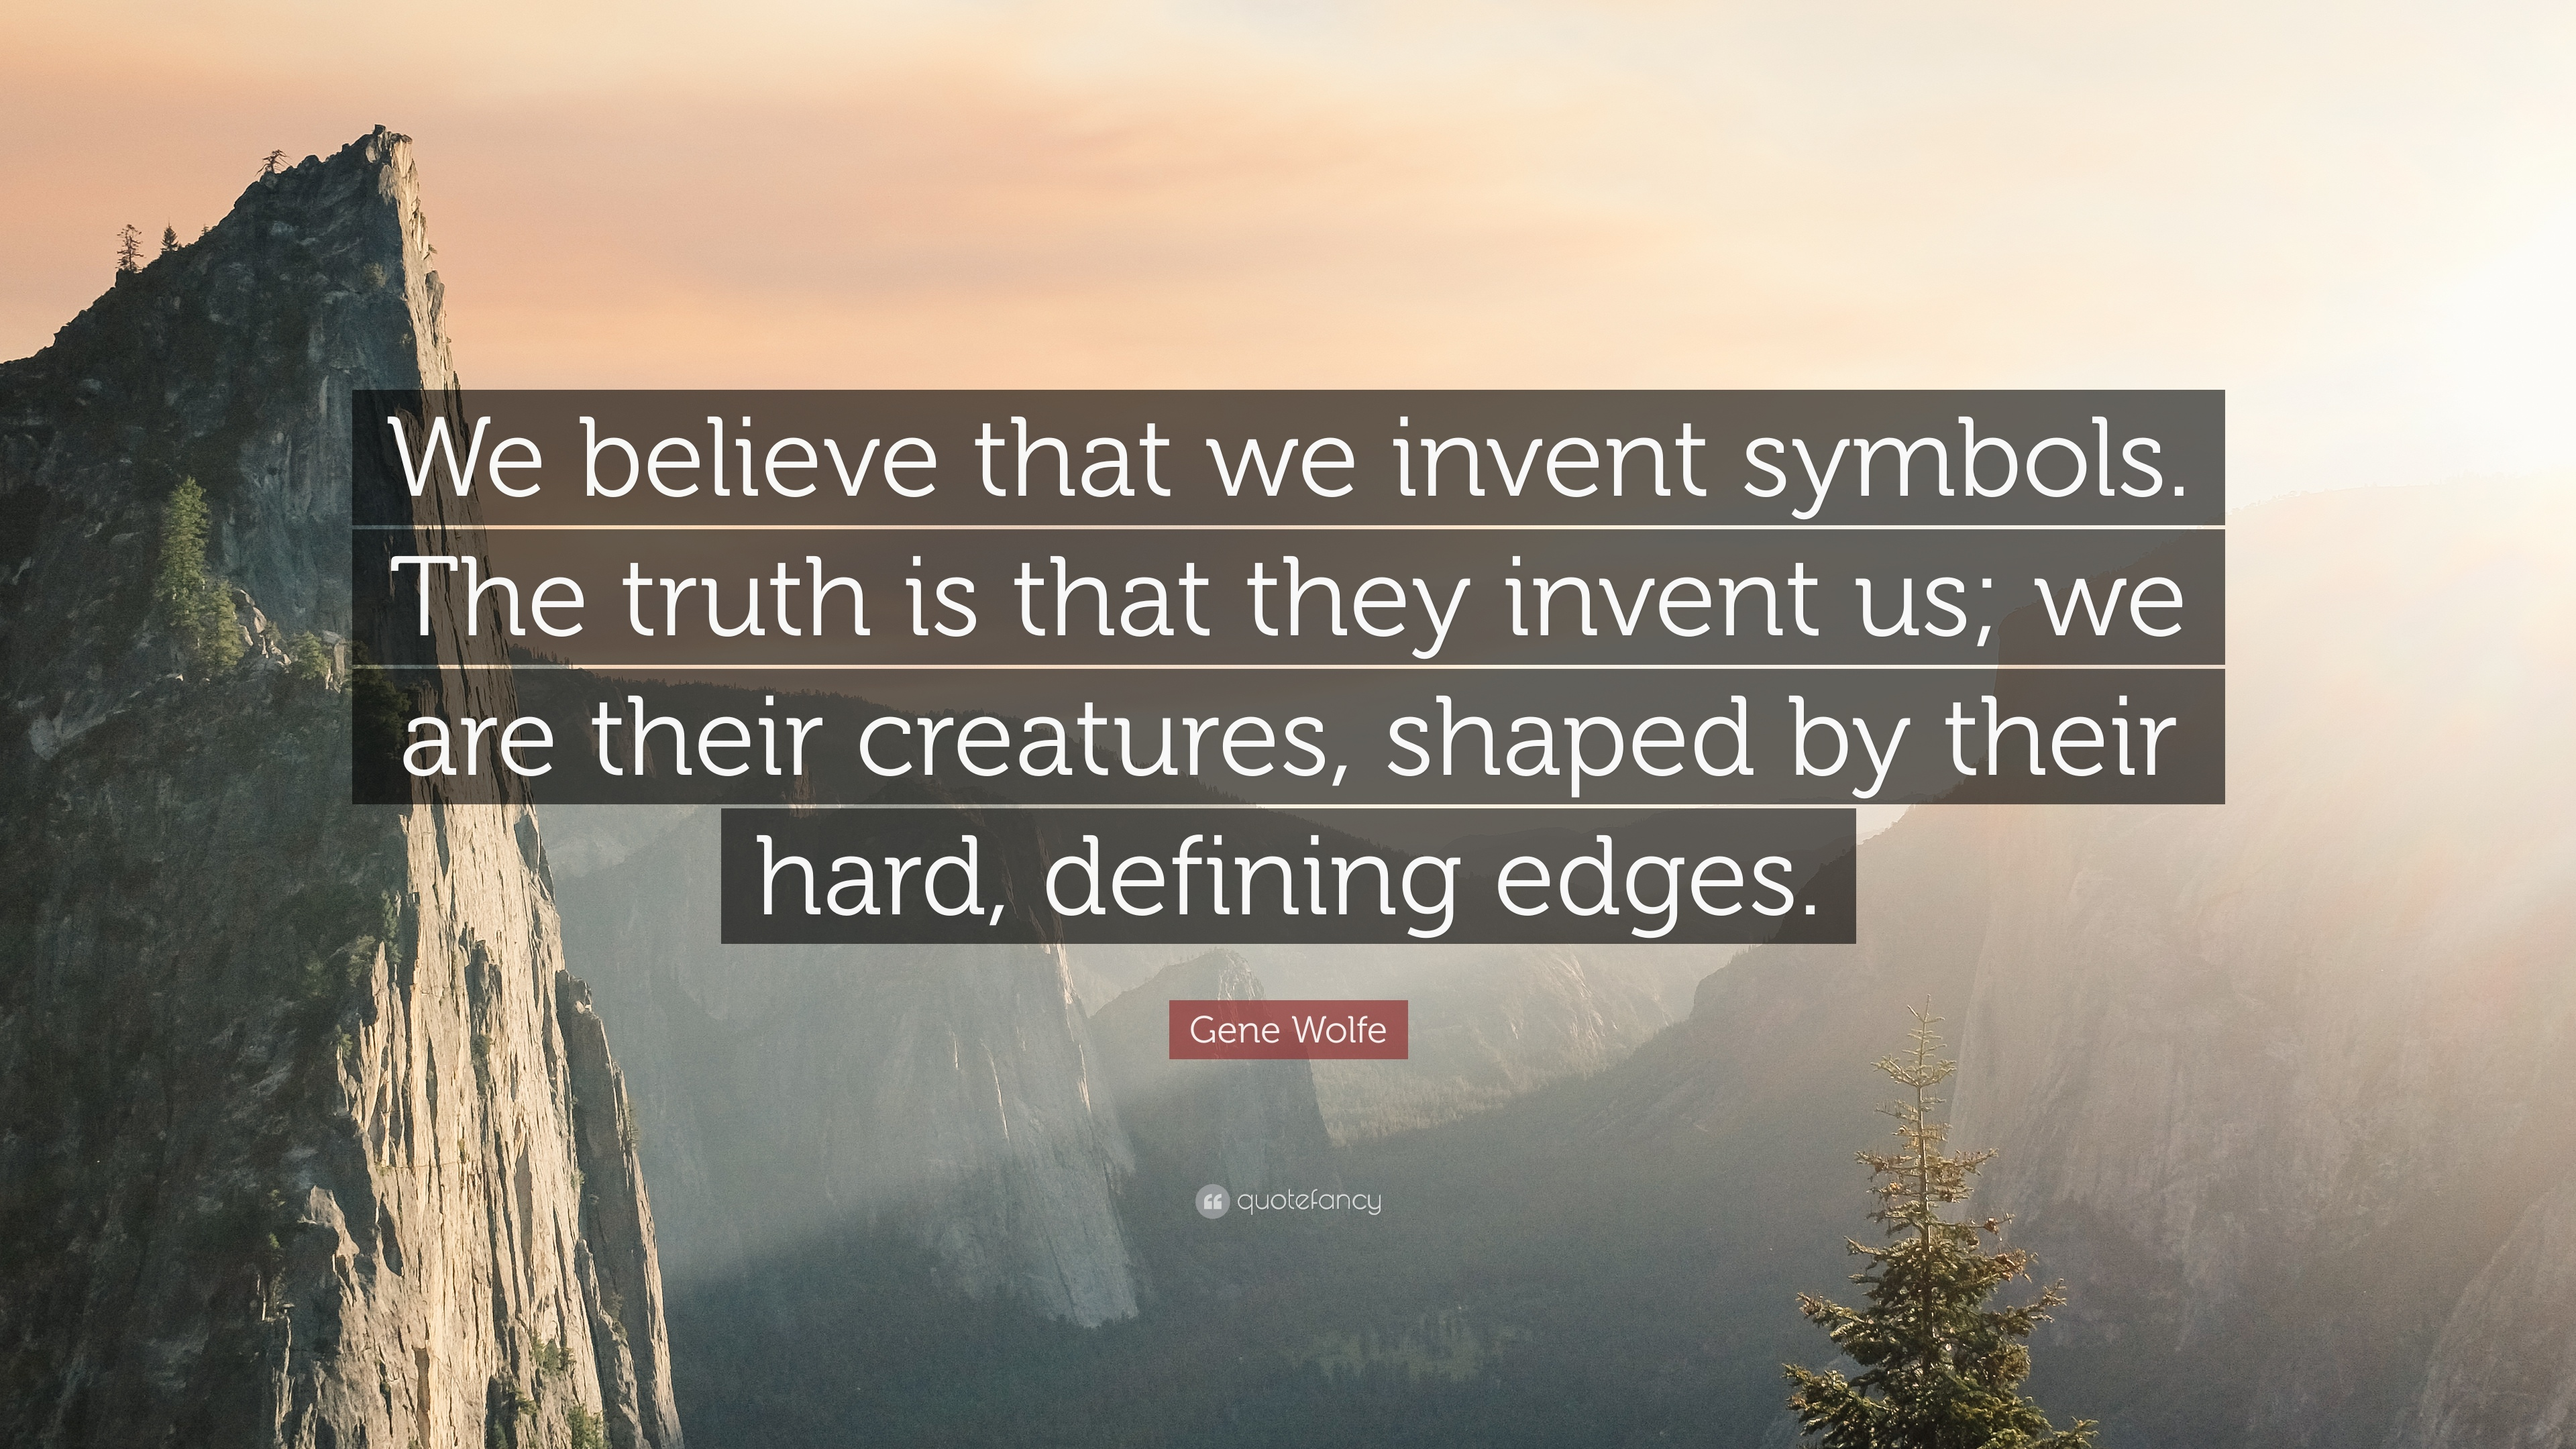 1138897-Gene-Wolfe-Quote-We-believe-that-we-invent-symbols-The-truth-is.jpg